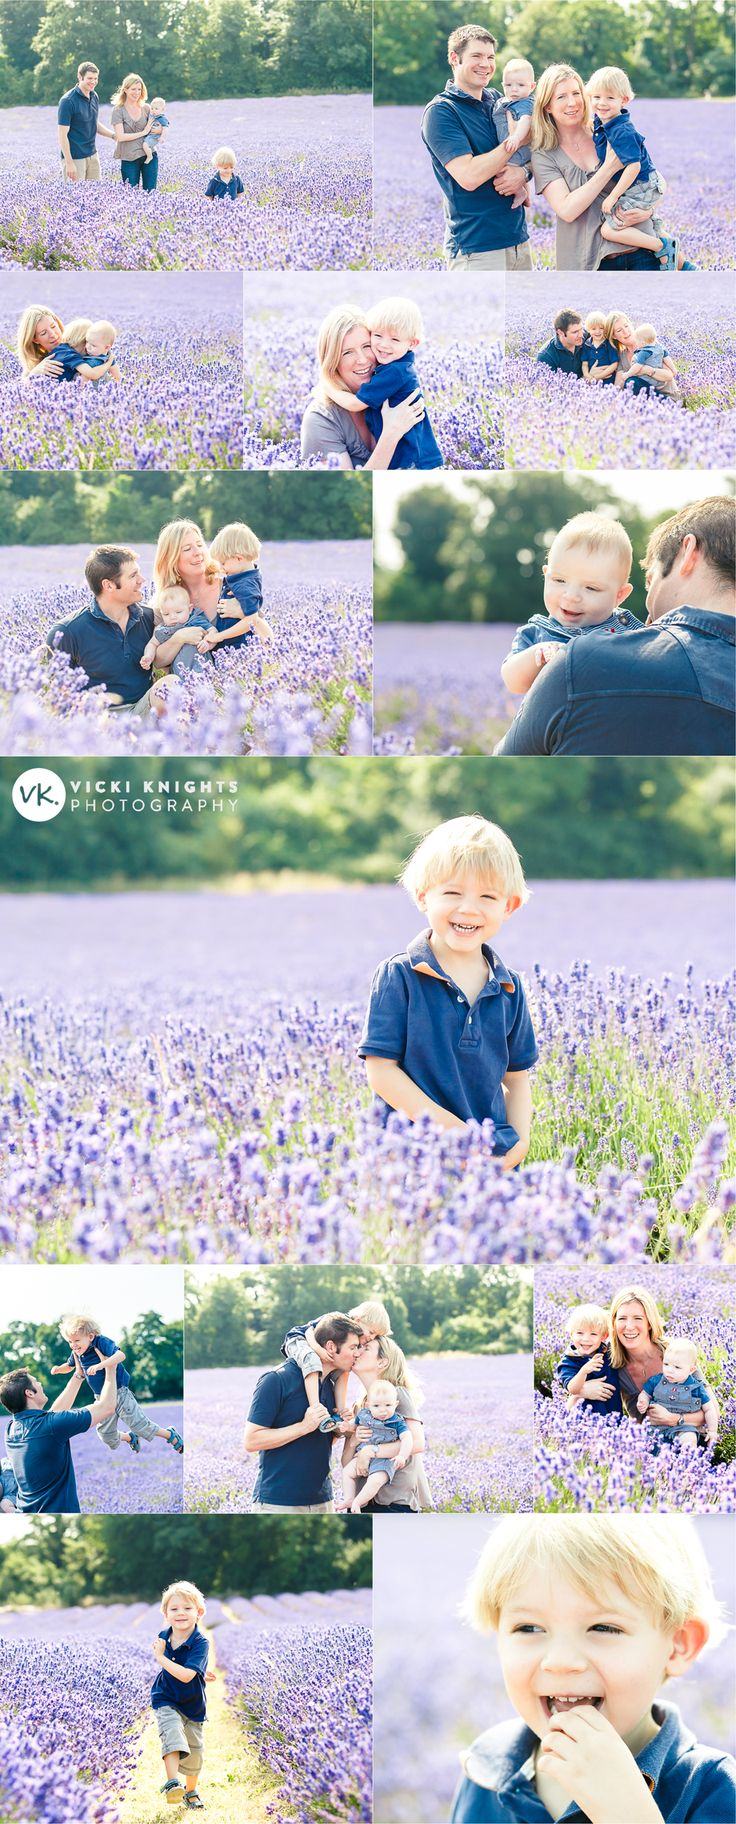 Family photo shoot in the lavender fields | Vicki Knights Photography